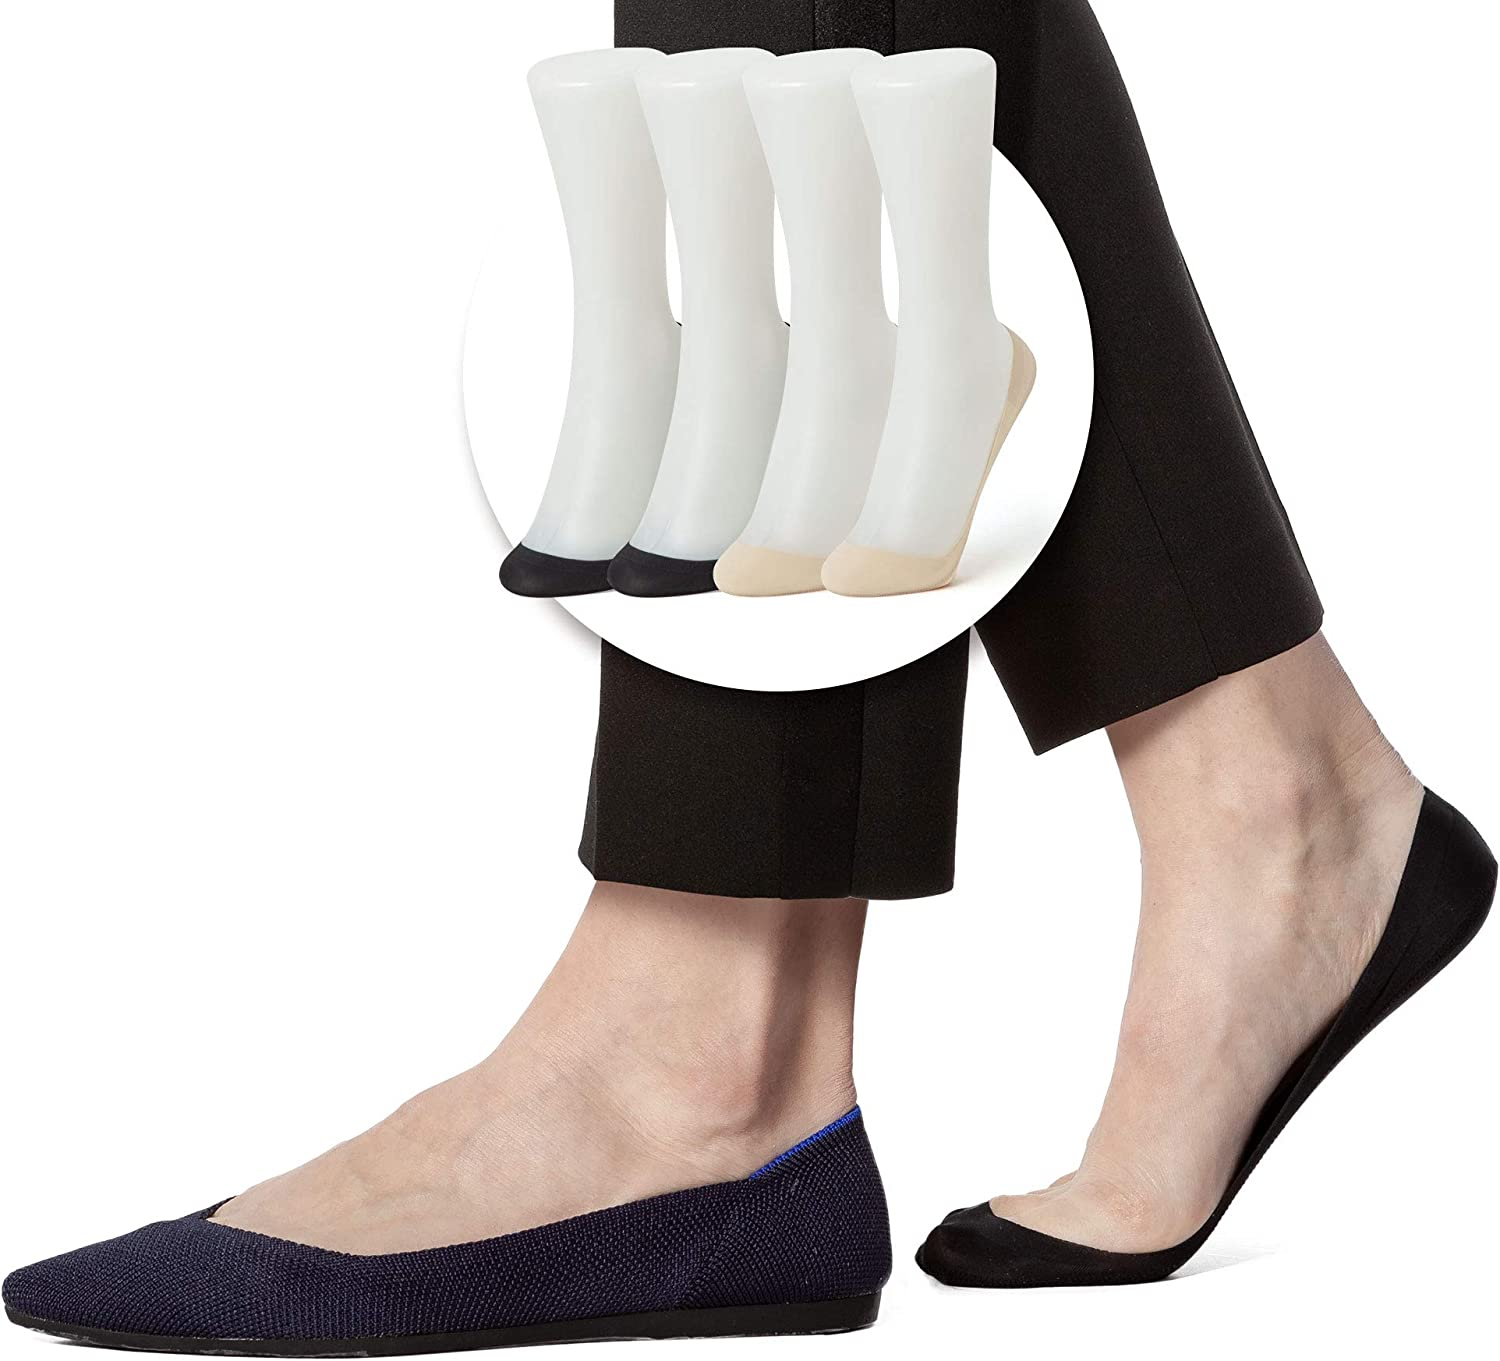 Sheec WOMEN SoleHugger SECRET 2.0 No Show Socks (Various Coverages and Sizes)